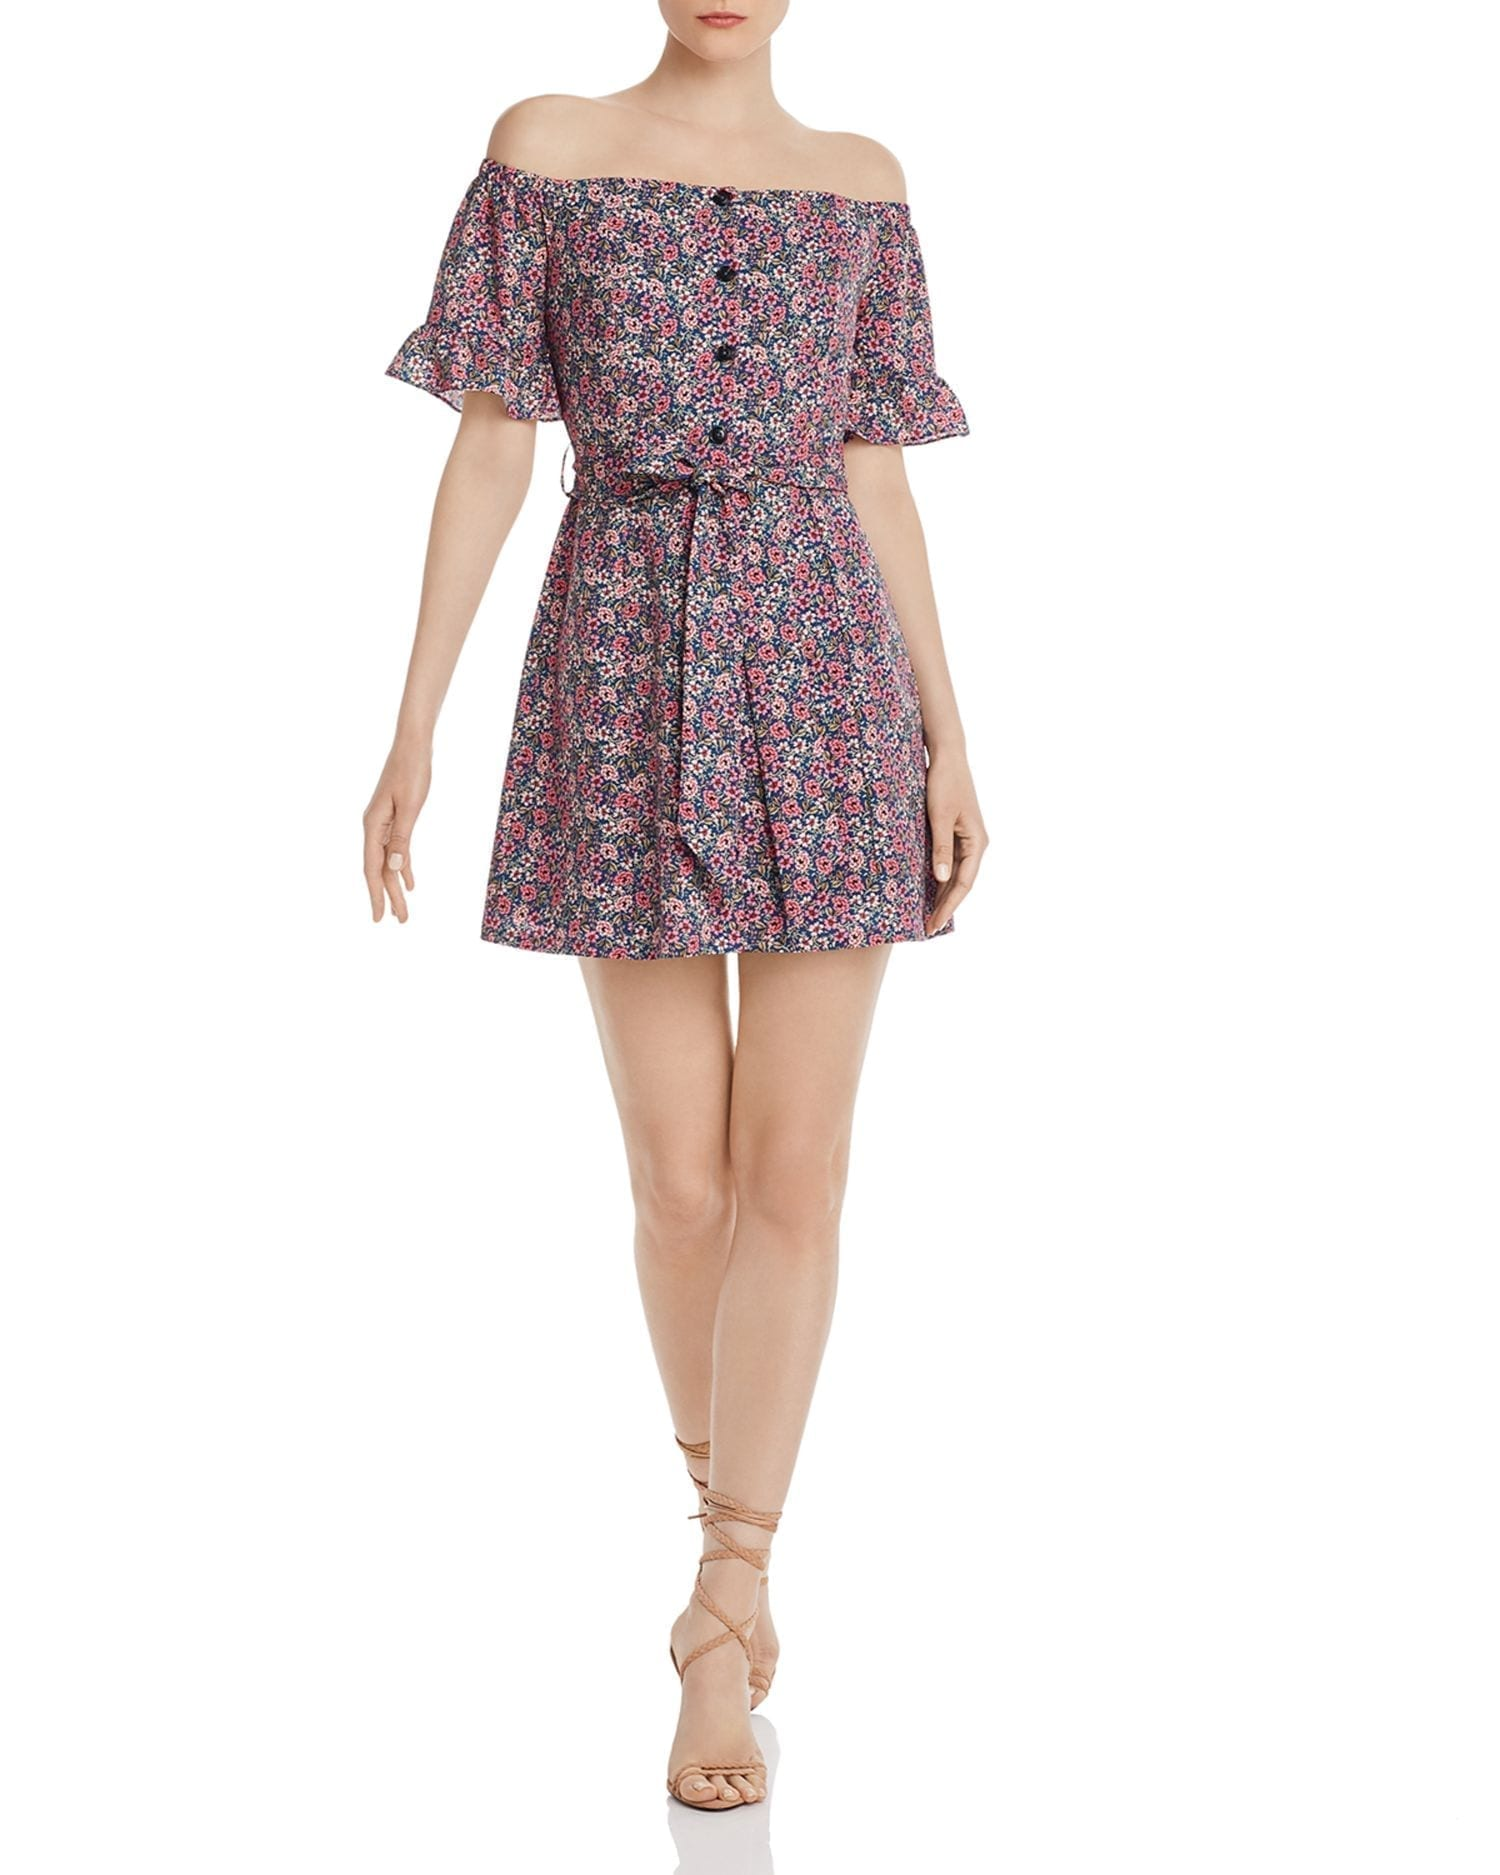 LOST AND WANDER Orchid Off-the-Shoulder Floral Mini Dress